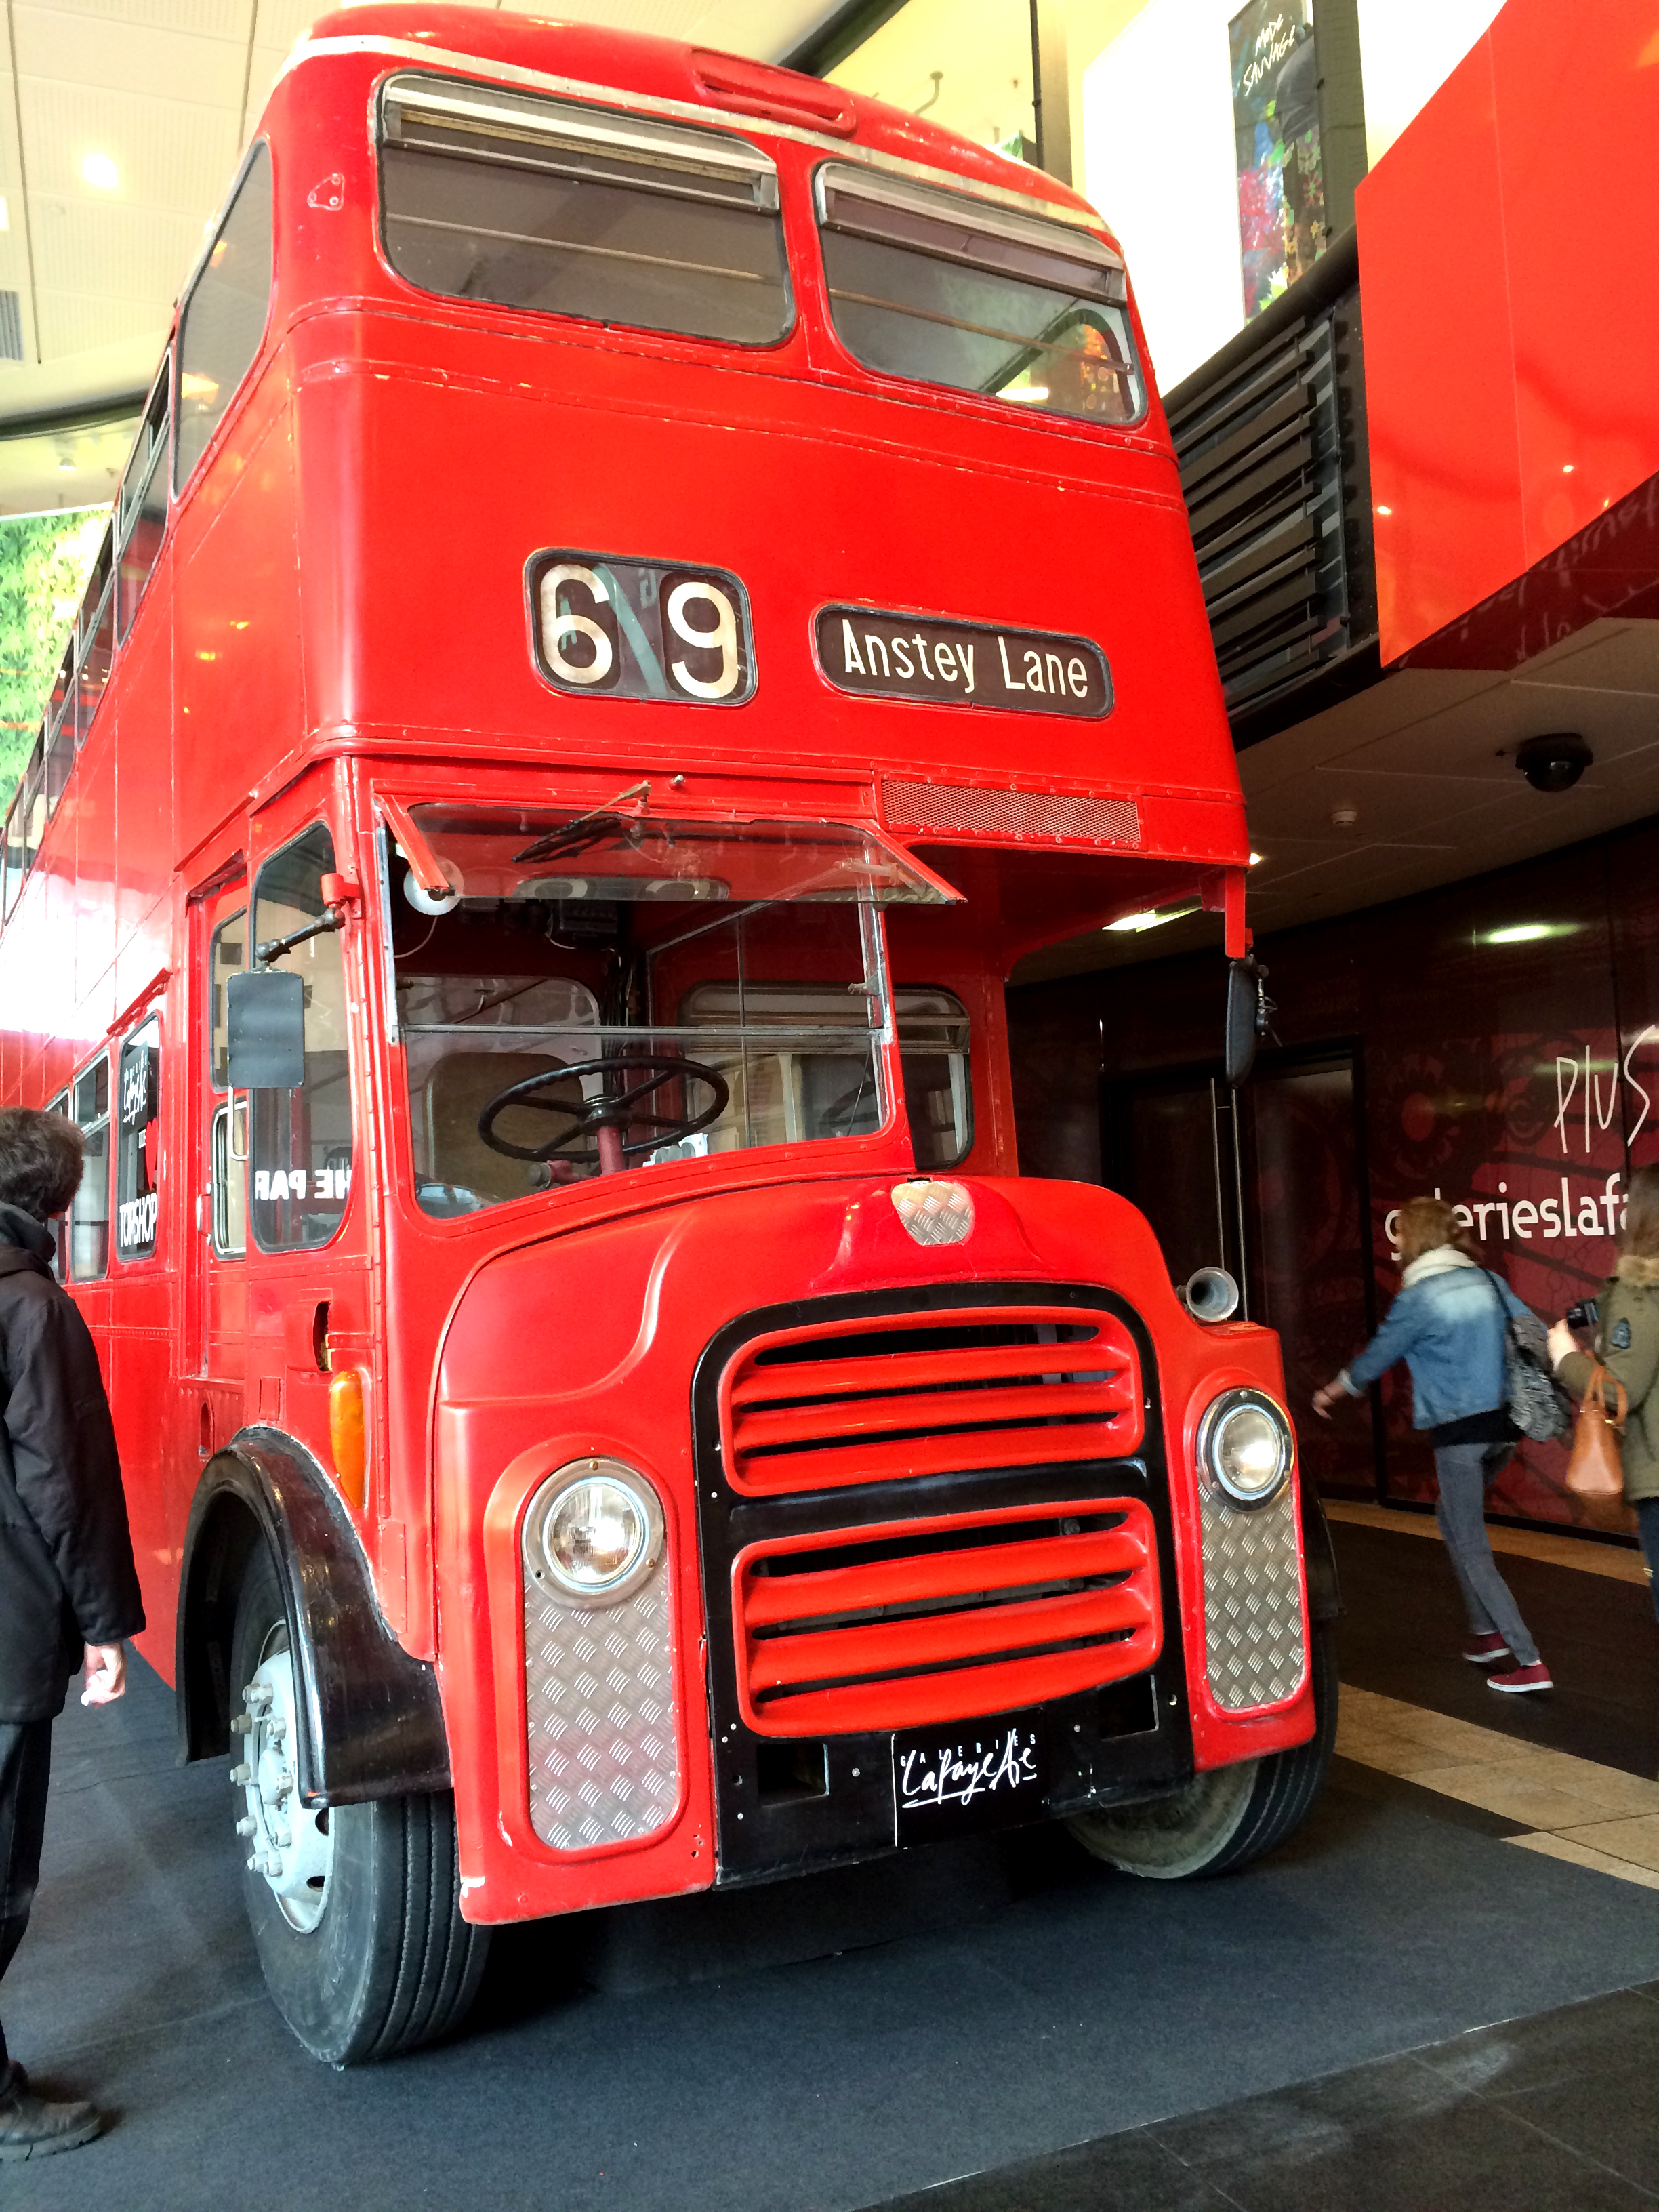 The Red Bus - Kate Moss - Topshop - Galeries Lafayette - Lille